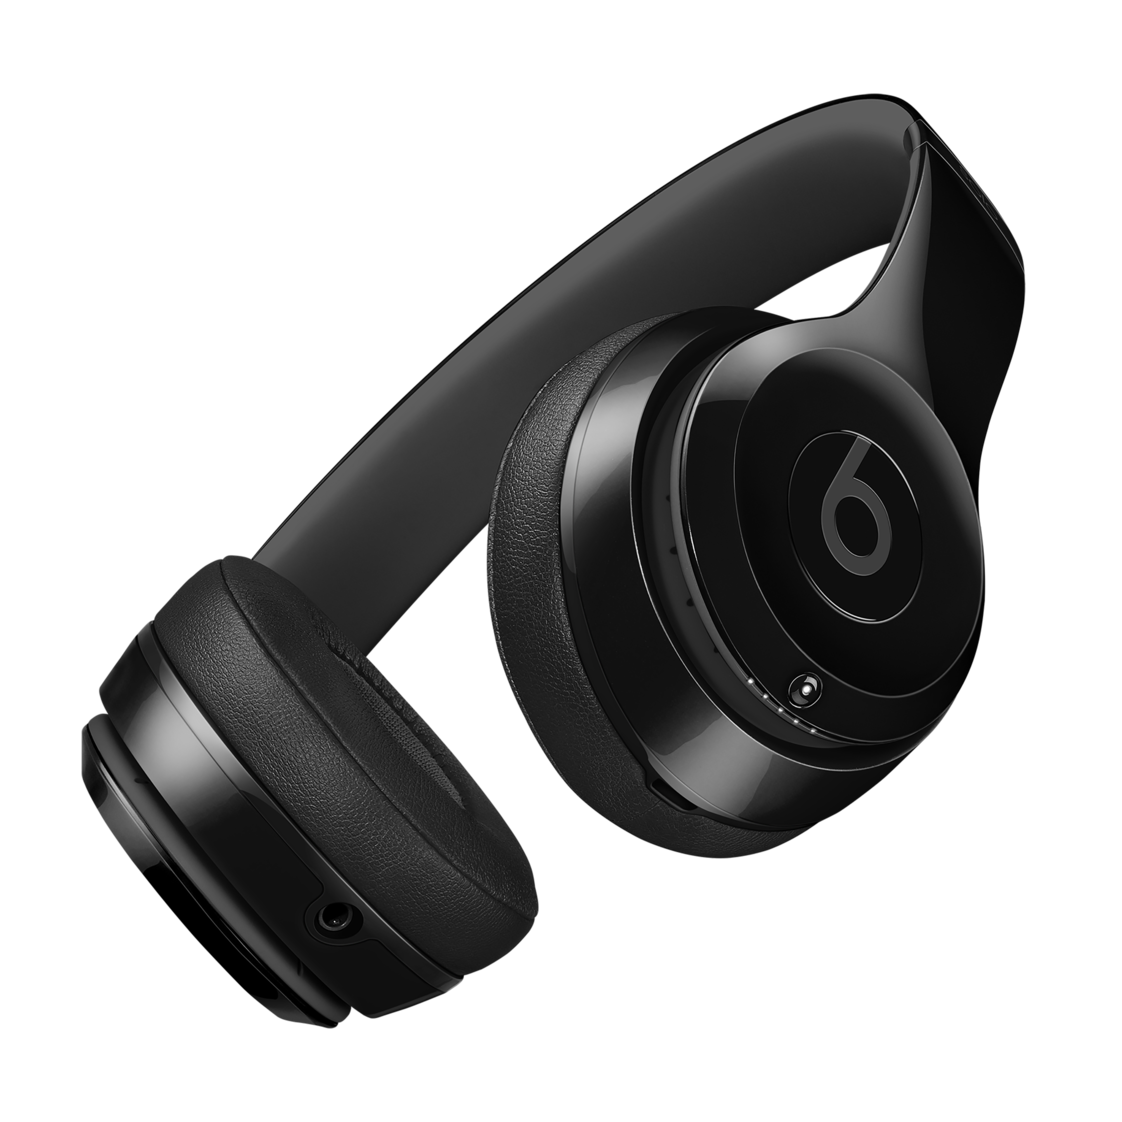 Wireless - Beats by Dre 2596d0f7cd